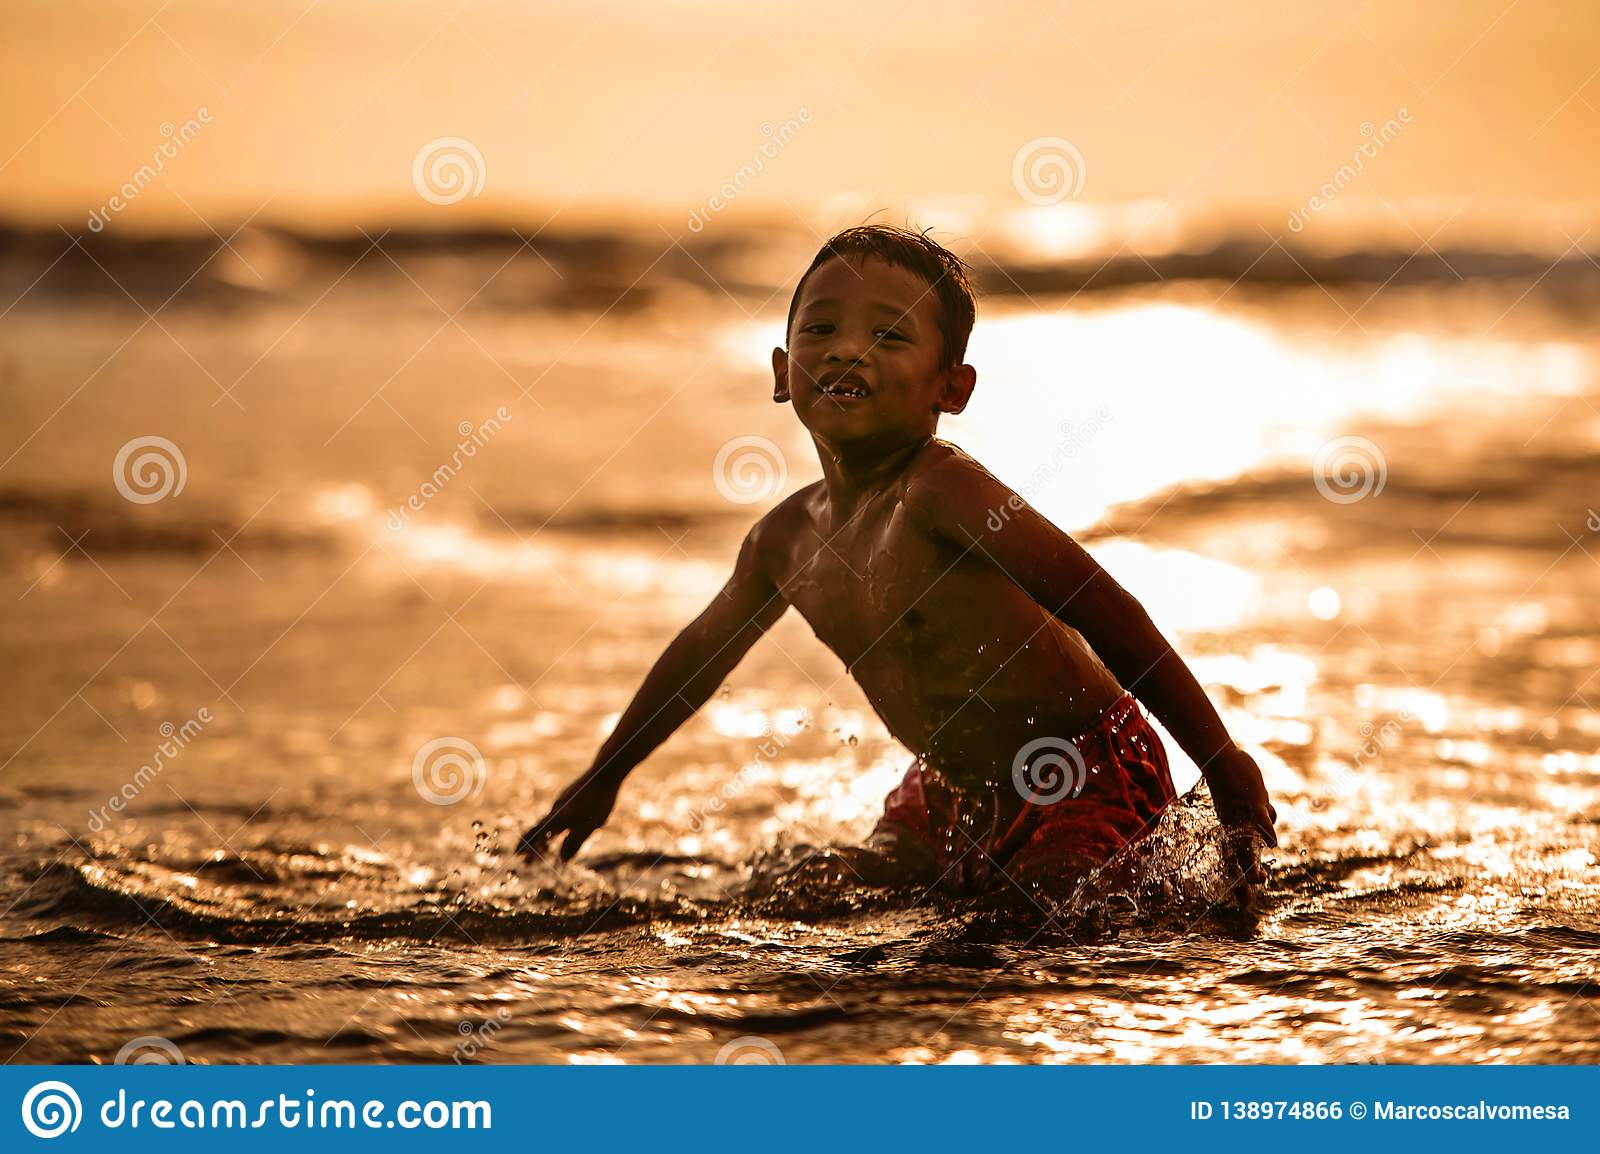 Silhouette of young boy playing crazy happy and free at the beach splashing with water playing with sea waves jumping and having